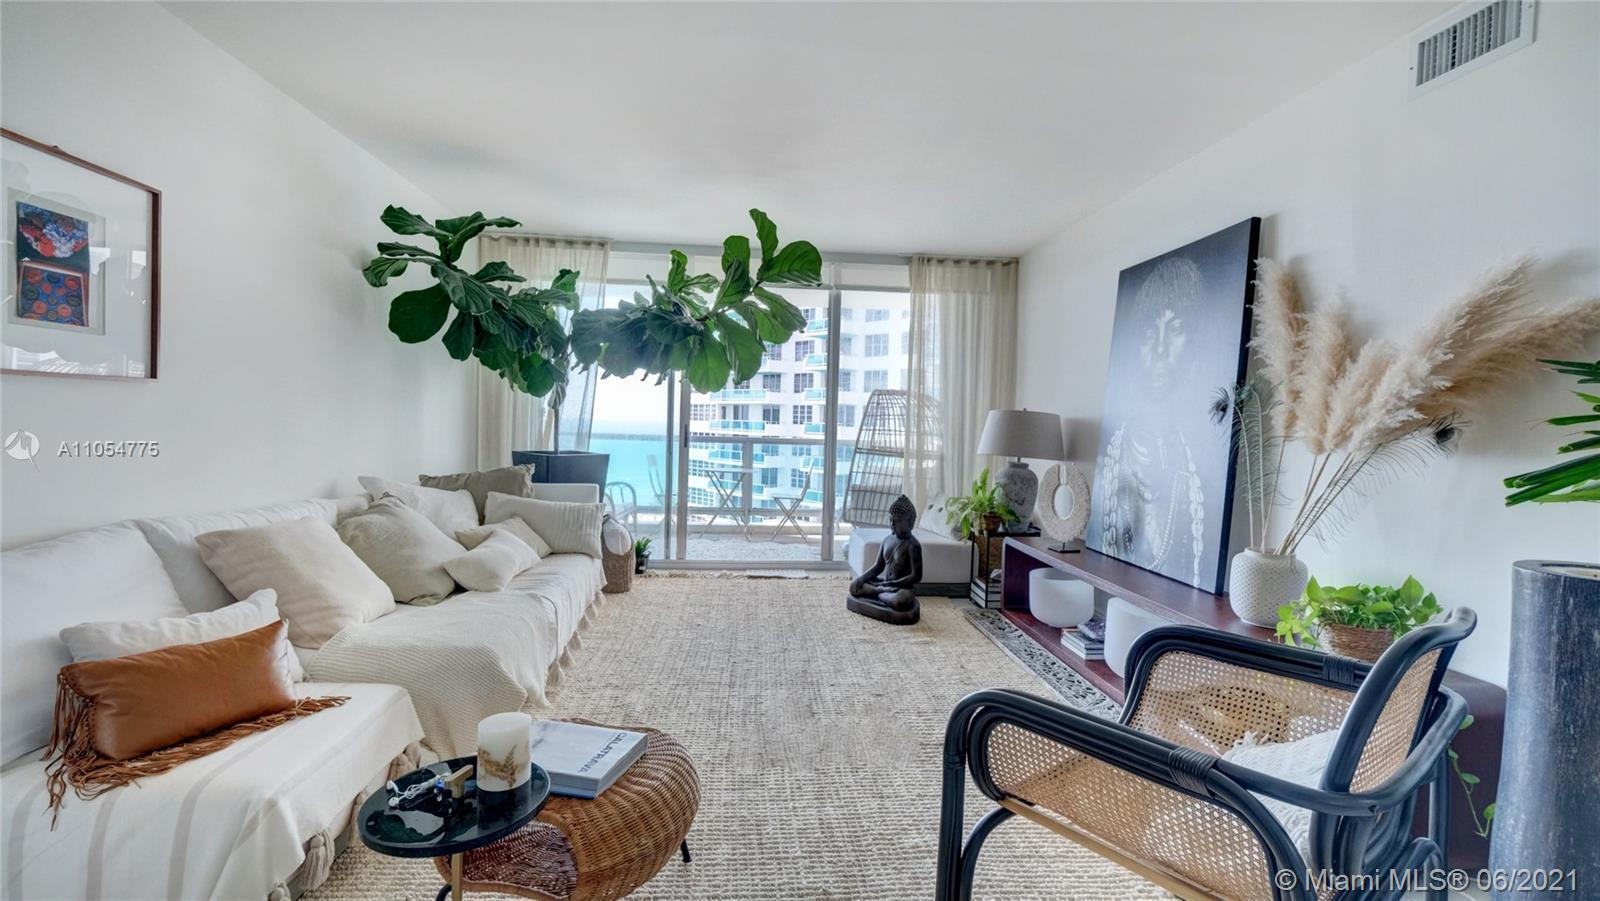 Beautiful 2/2 with direct ocean access and views located on Famous Millionaire's Row. Seacoast - lux